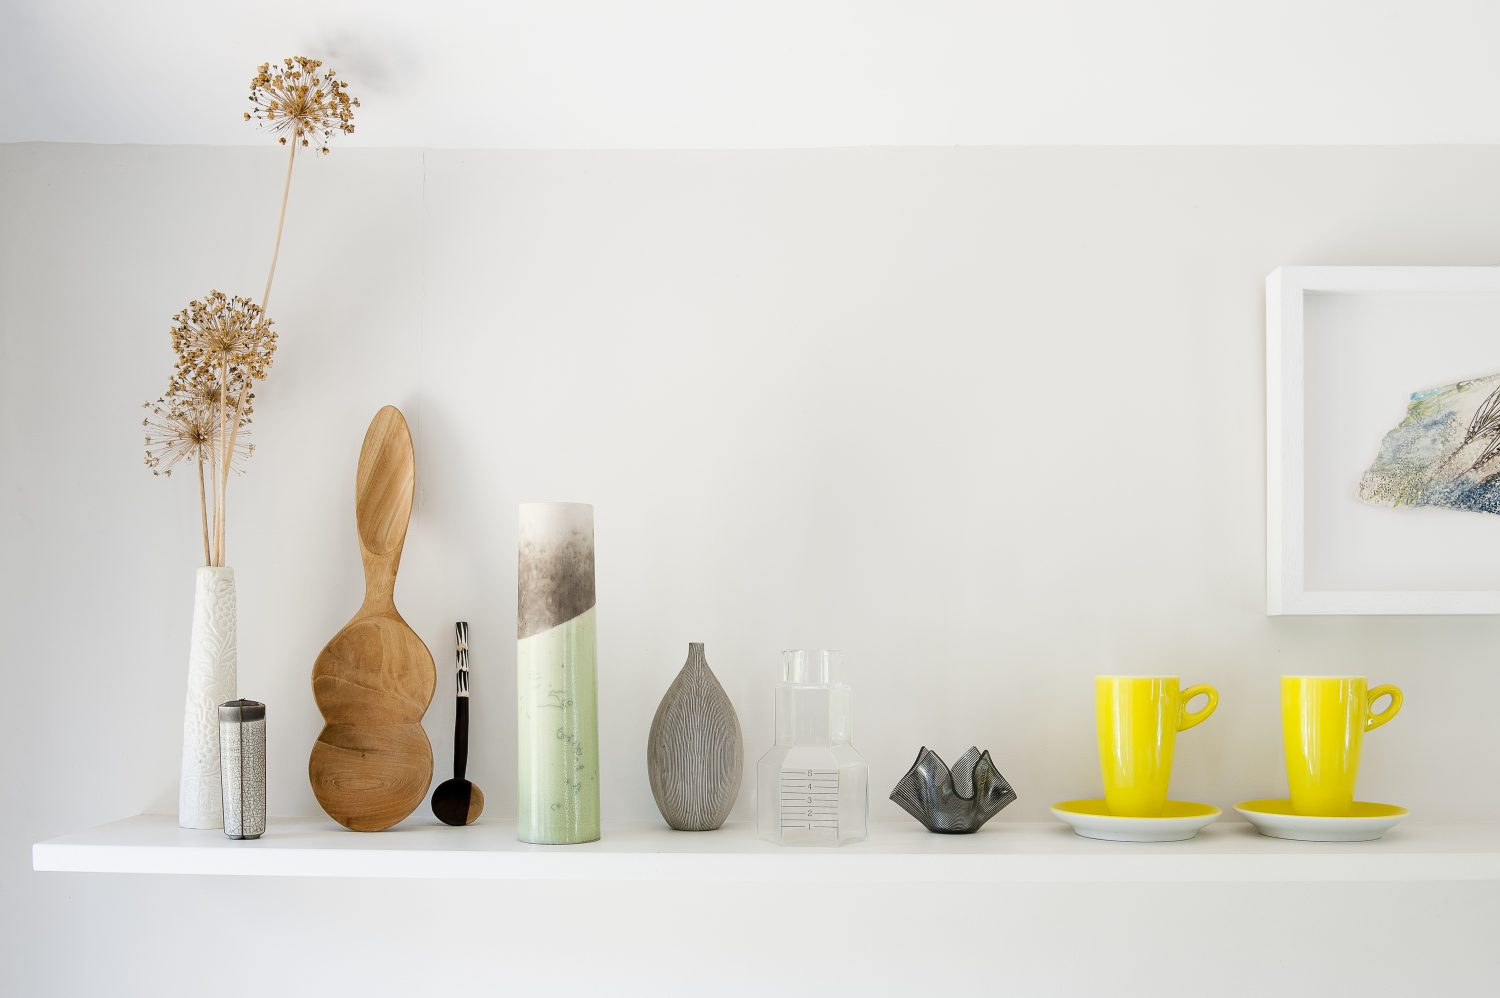 Karen's new kitchen has opened up the whole house, making the space much more useable for the family. Ceramics by Kate Schuricht are mixed with other objects on a shelf above the sink